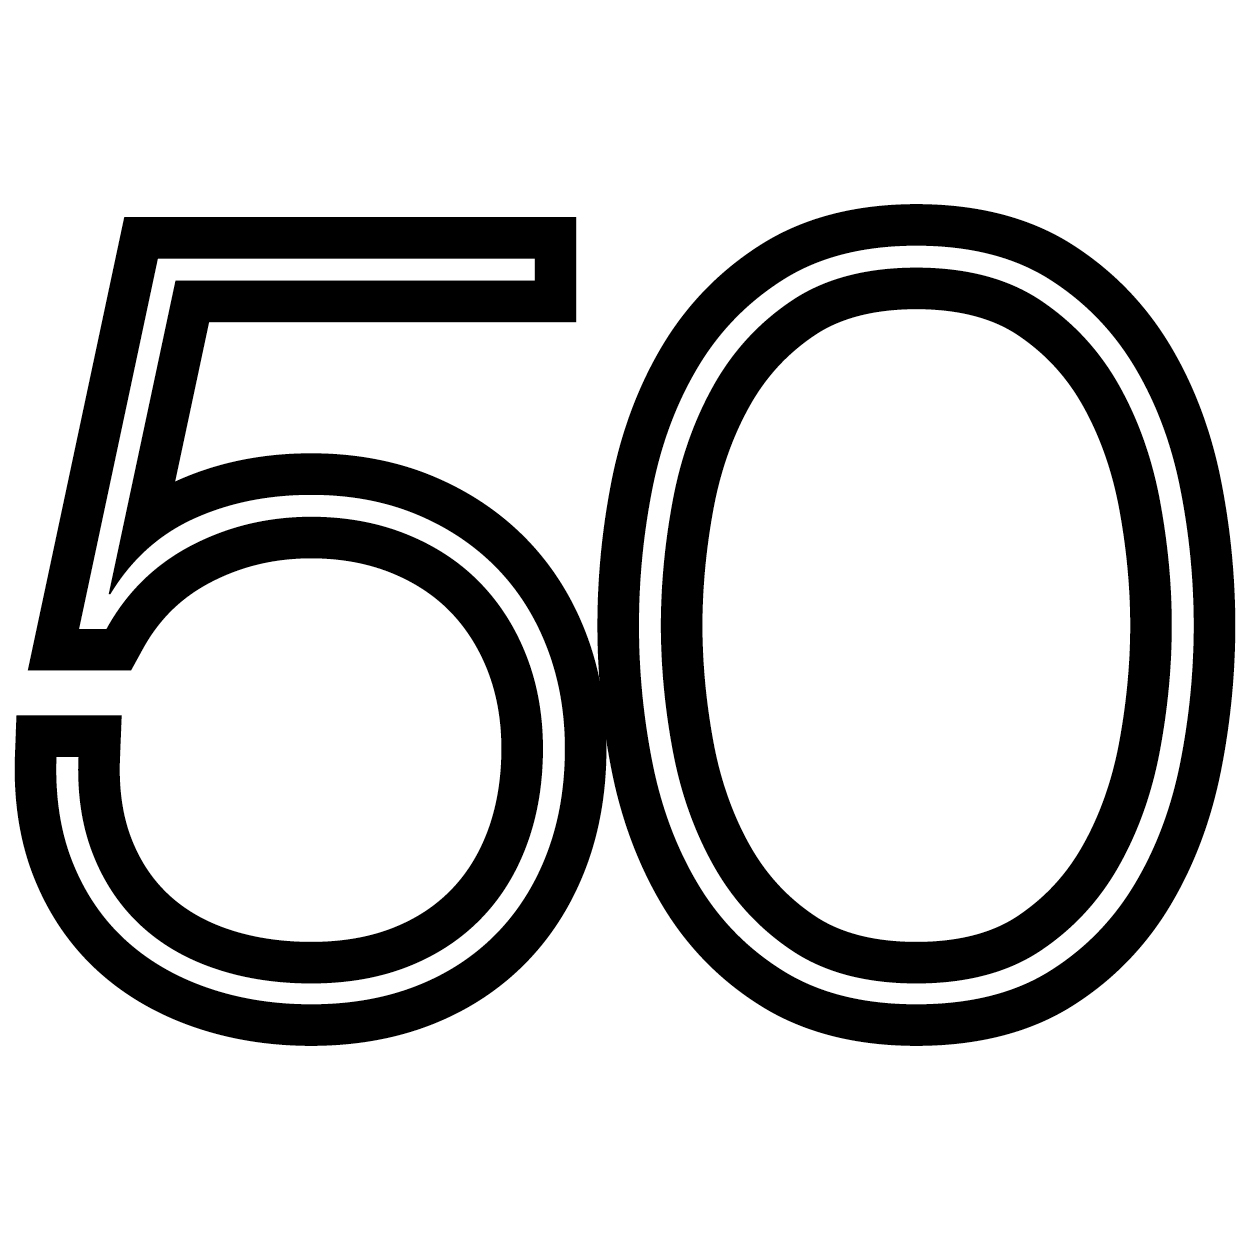 50 NEW products over 50 days ...